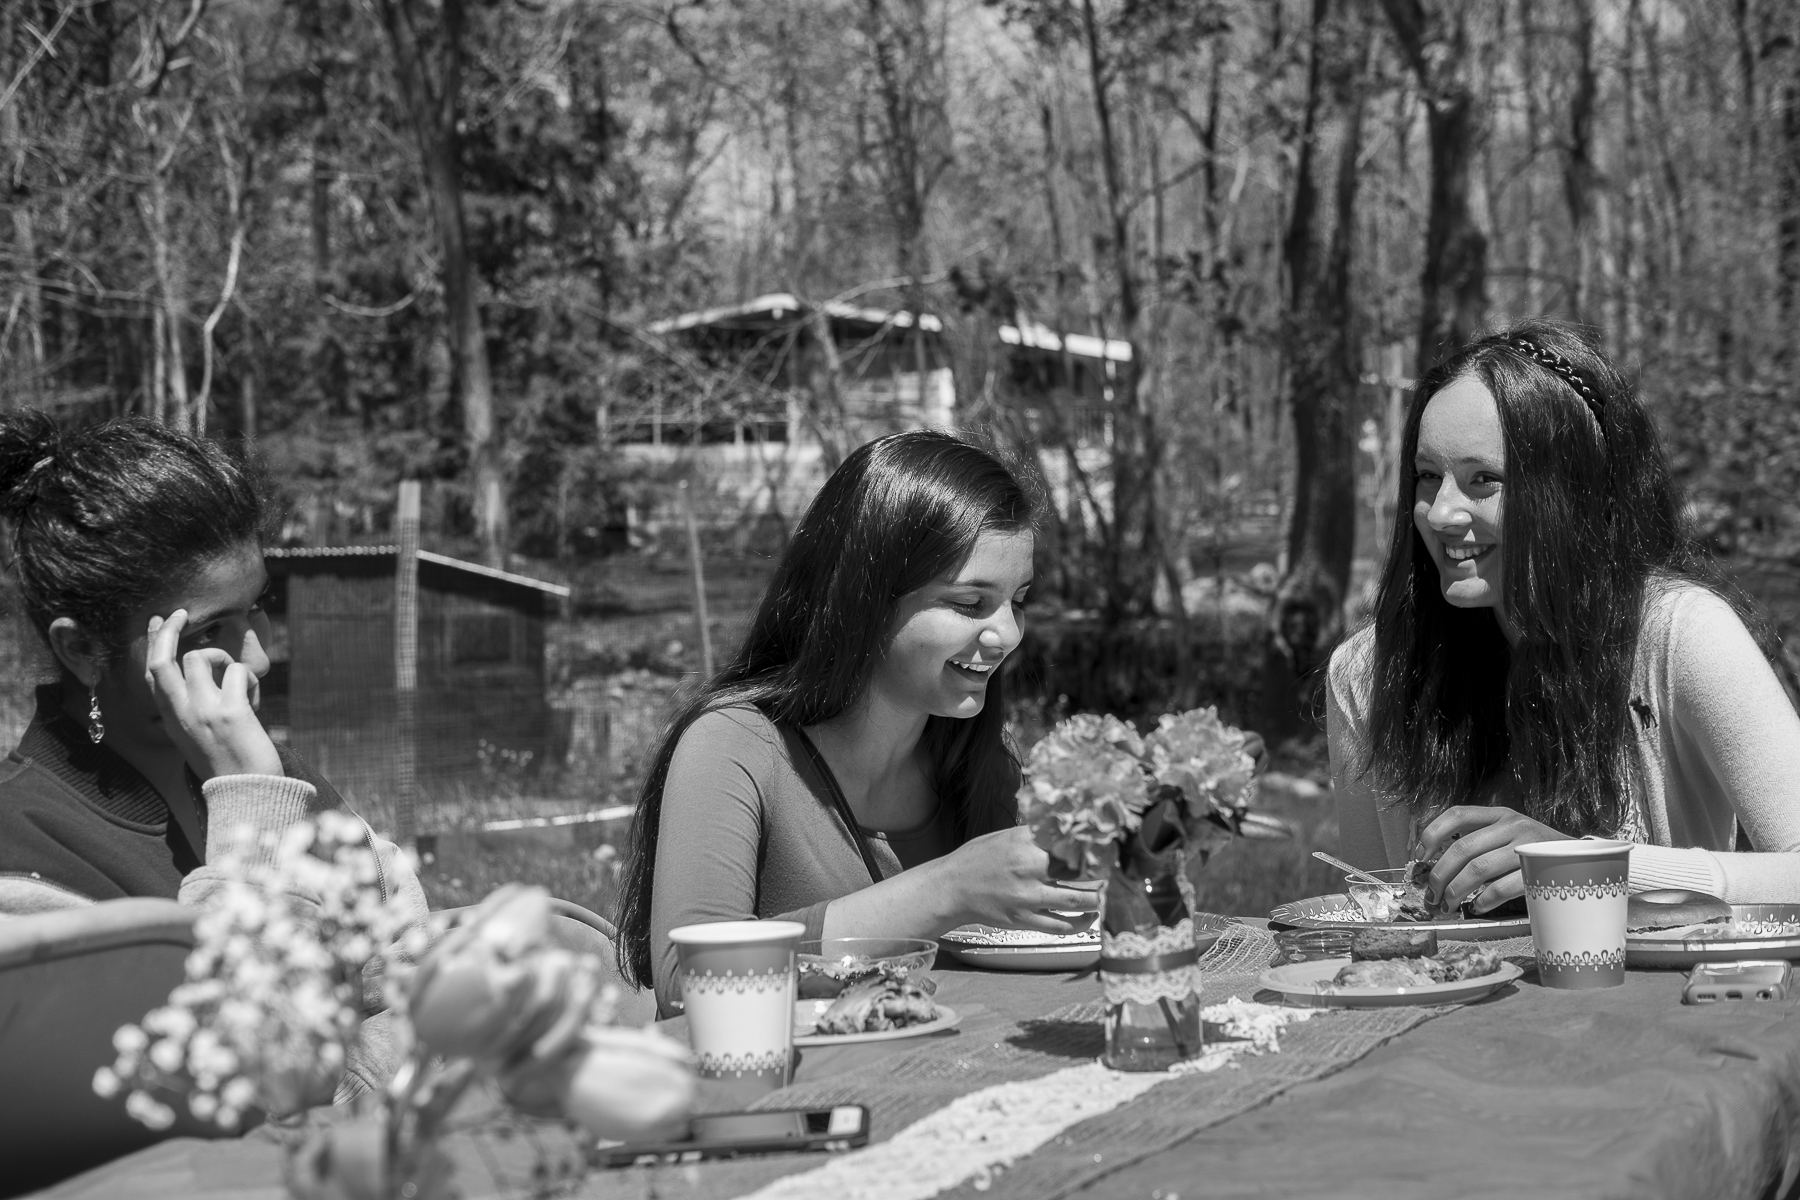 The younger generation of girls sits at the end of the table and laugh amongst themselves. As with most other groups of immigrants from around the world, each generation becomes more integrated into society, maintaining less and less of the traditions of their parents. For the children of American converts, like Sara Gordon, there was never a cultural hurdle to get over. But other children, like these young girls, have to find the balance.